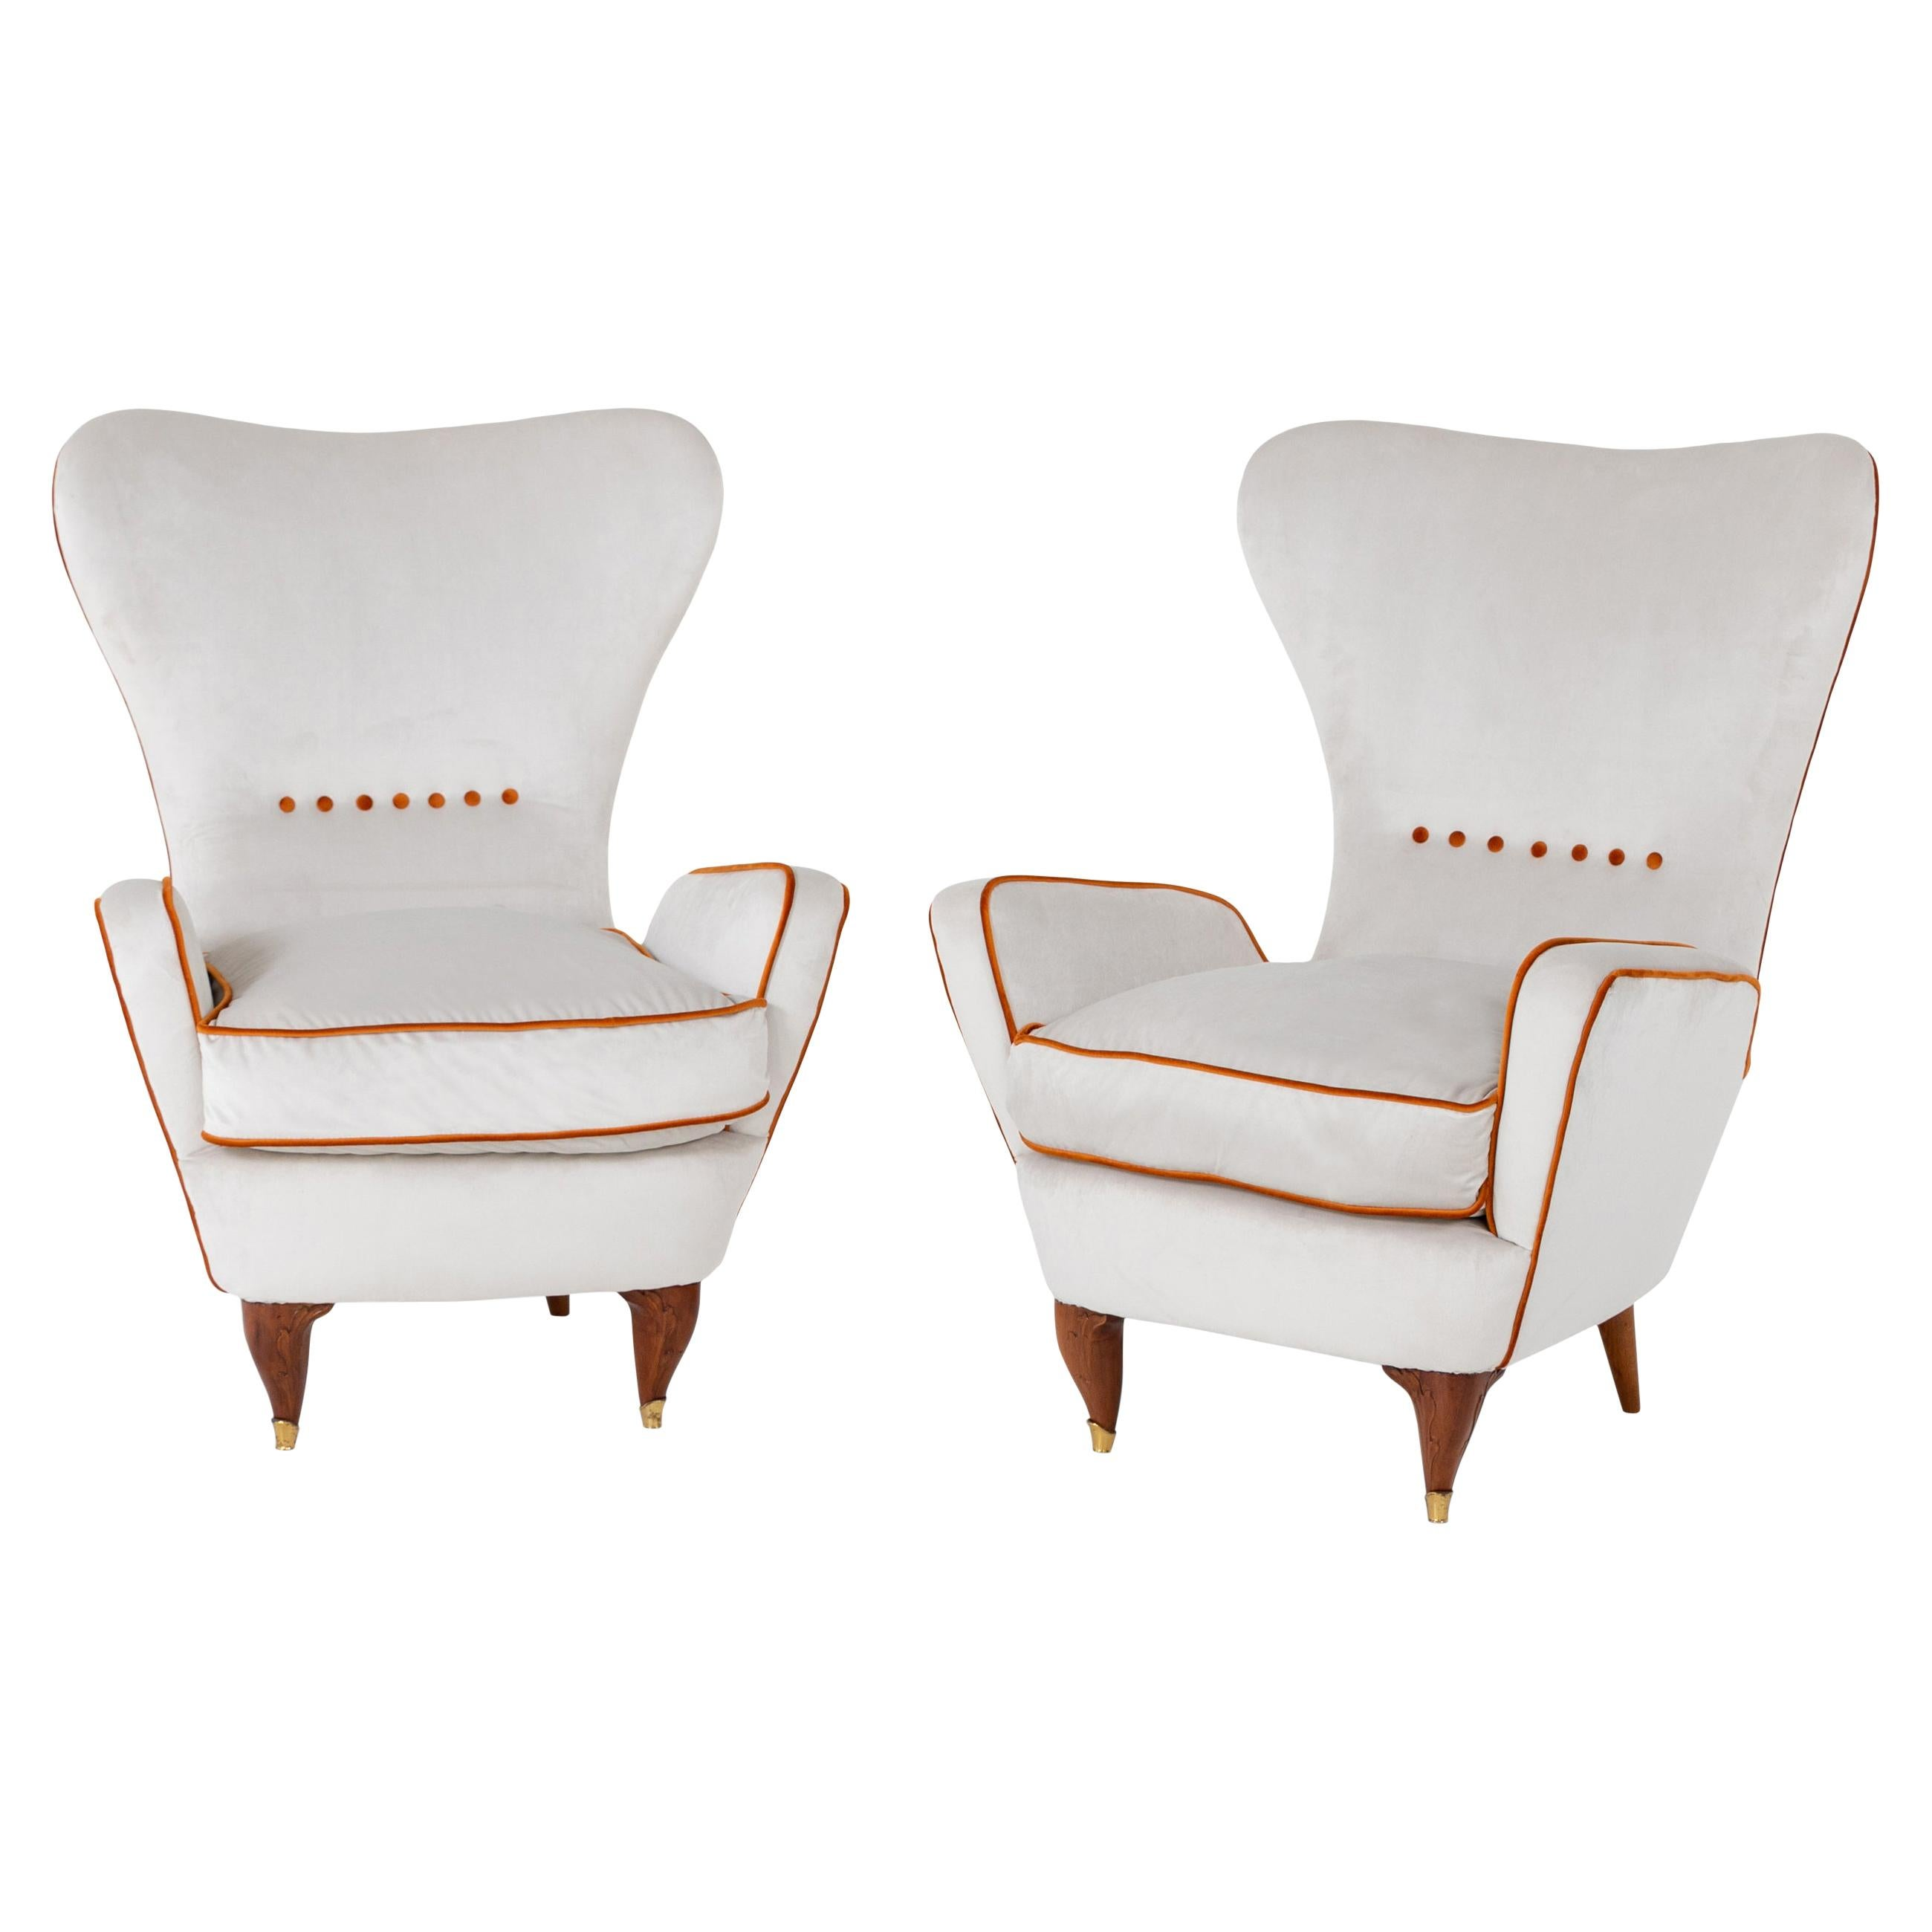 Lounge Chairs by Paolo Buffa, Italy, 1950s